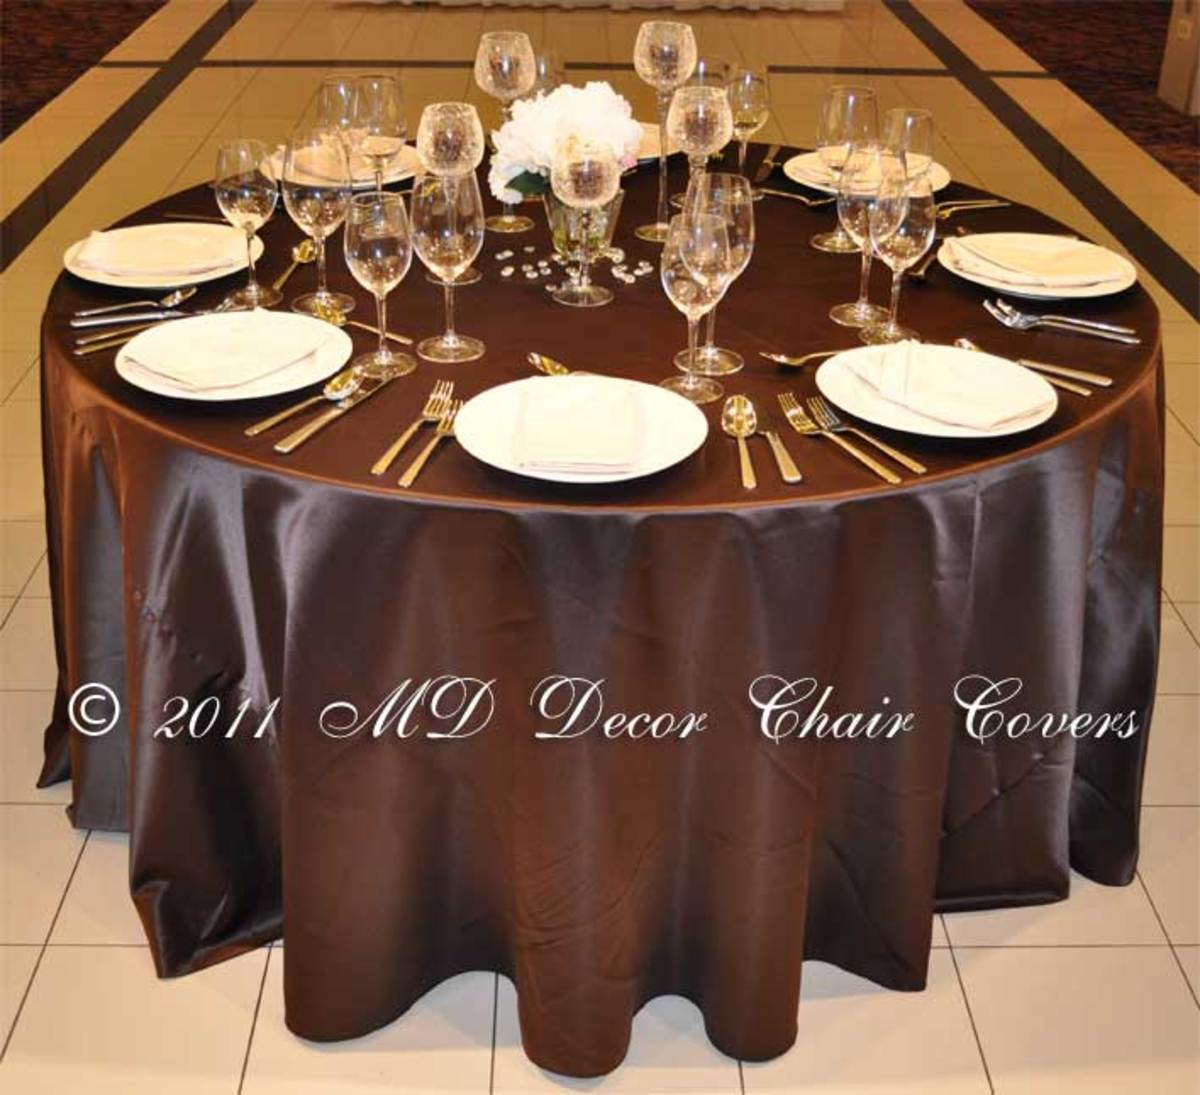 dark chocolate lamour satin tablecloth photo credit: mddecorchaircovers.com